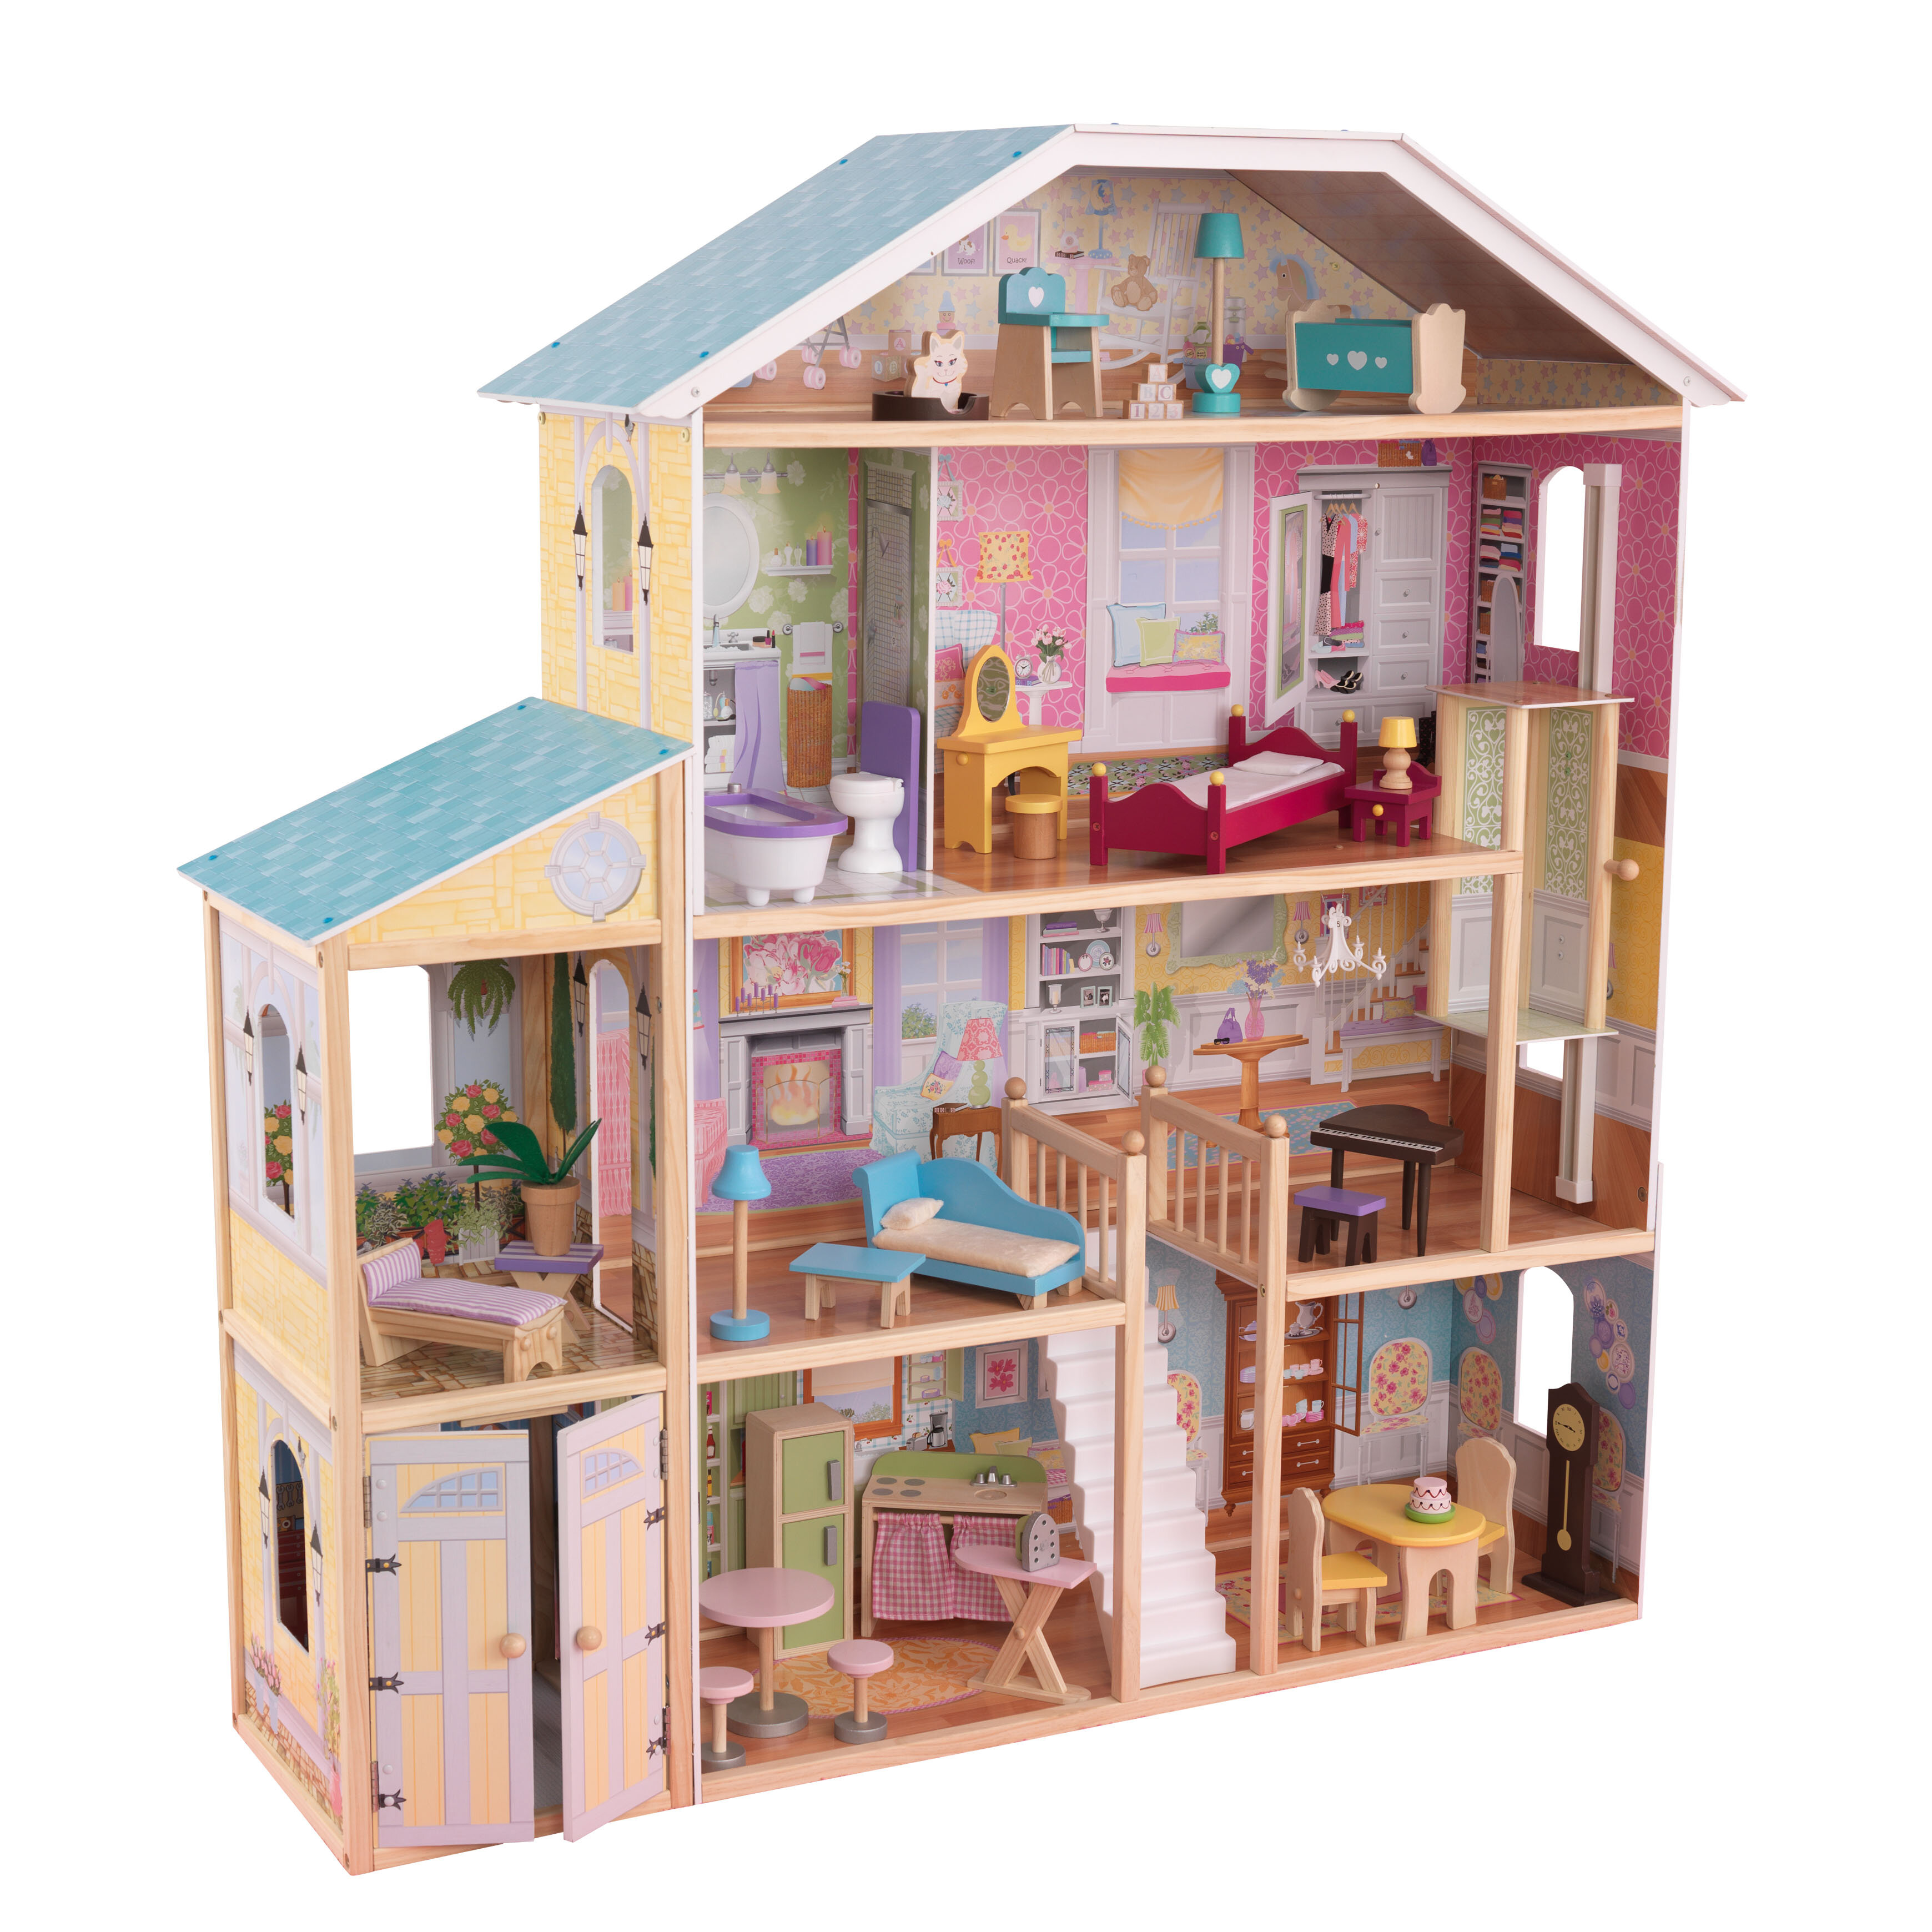 White Pink Teamson Kids Blue Dreamland Barcelona Wooden Pretend Play Doll House Dollhouse for 3.5 Doll with 10 Pieces of Furniture